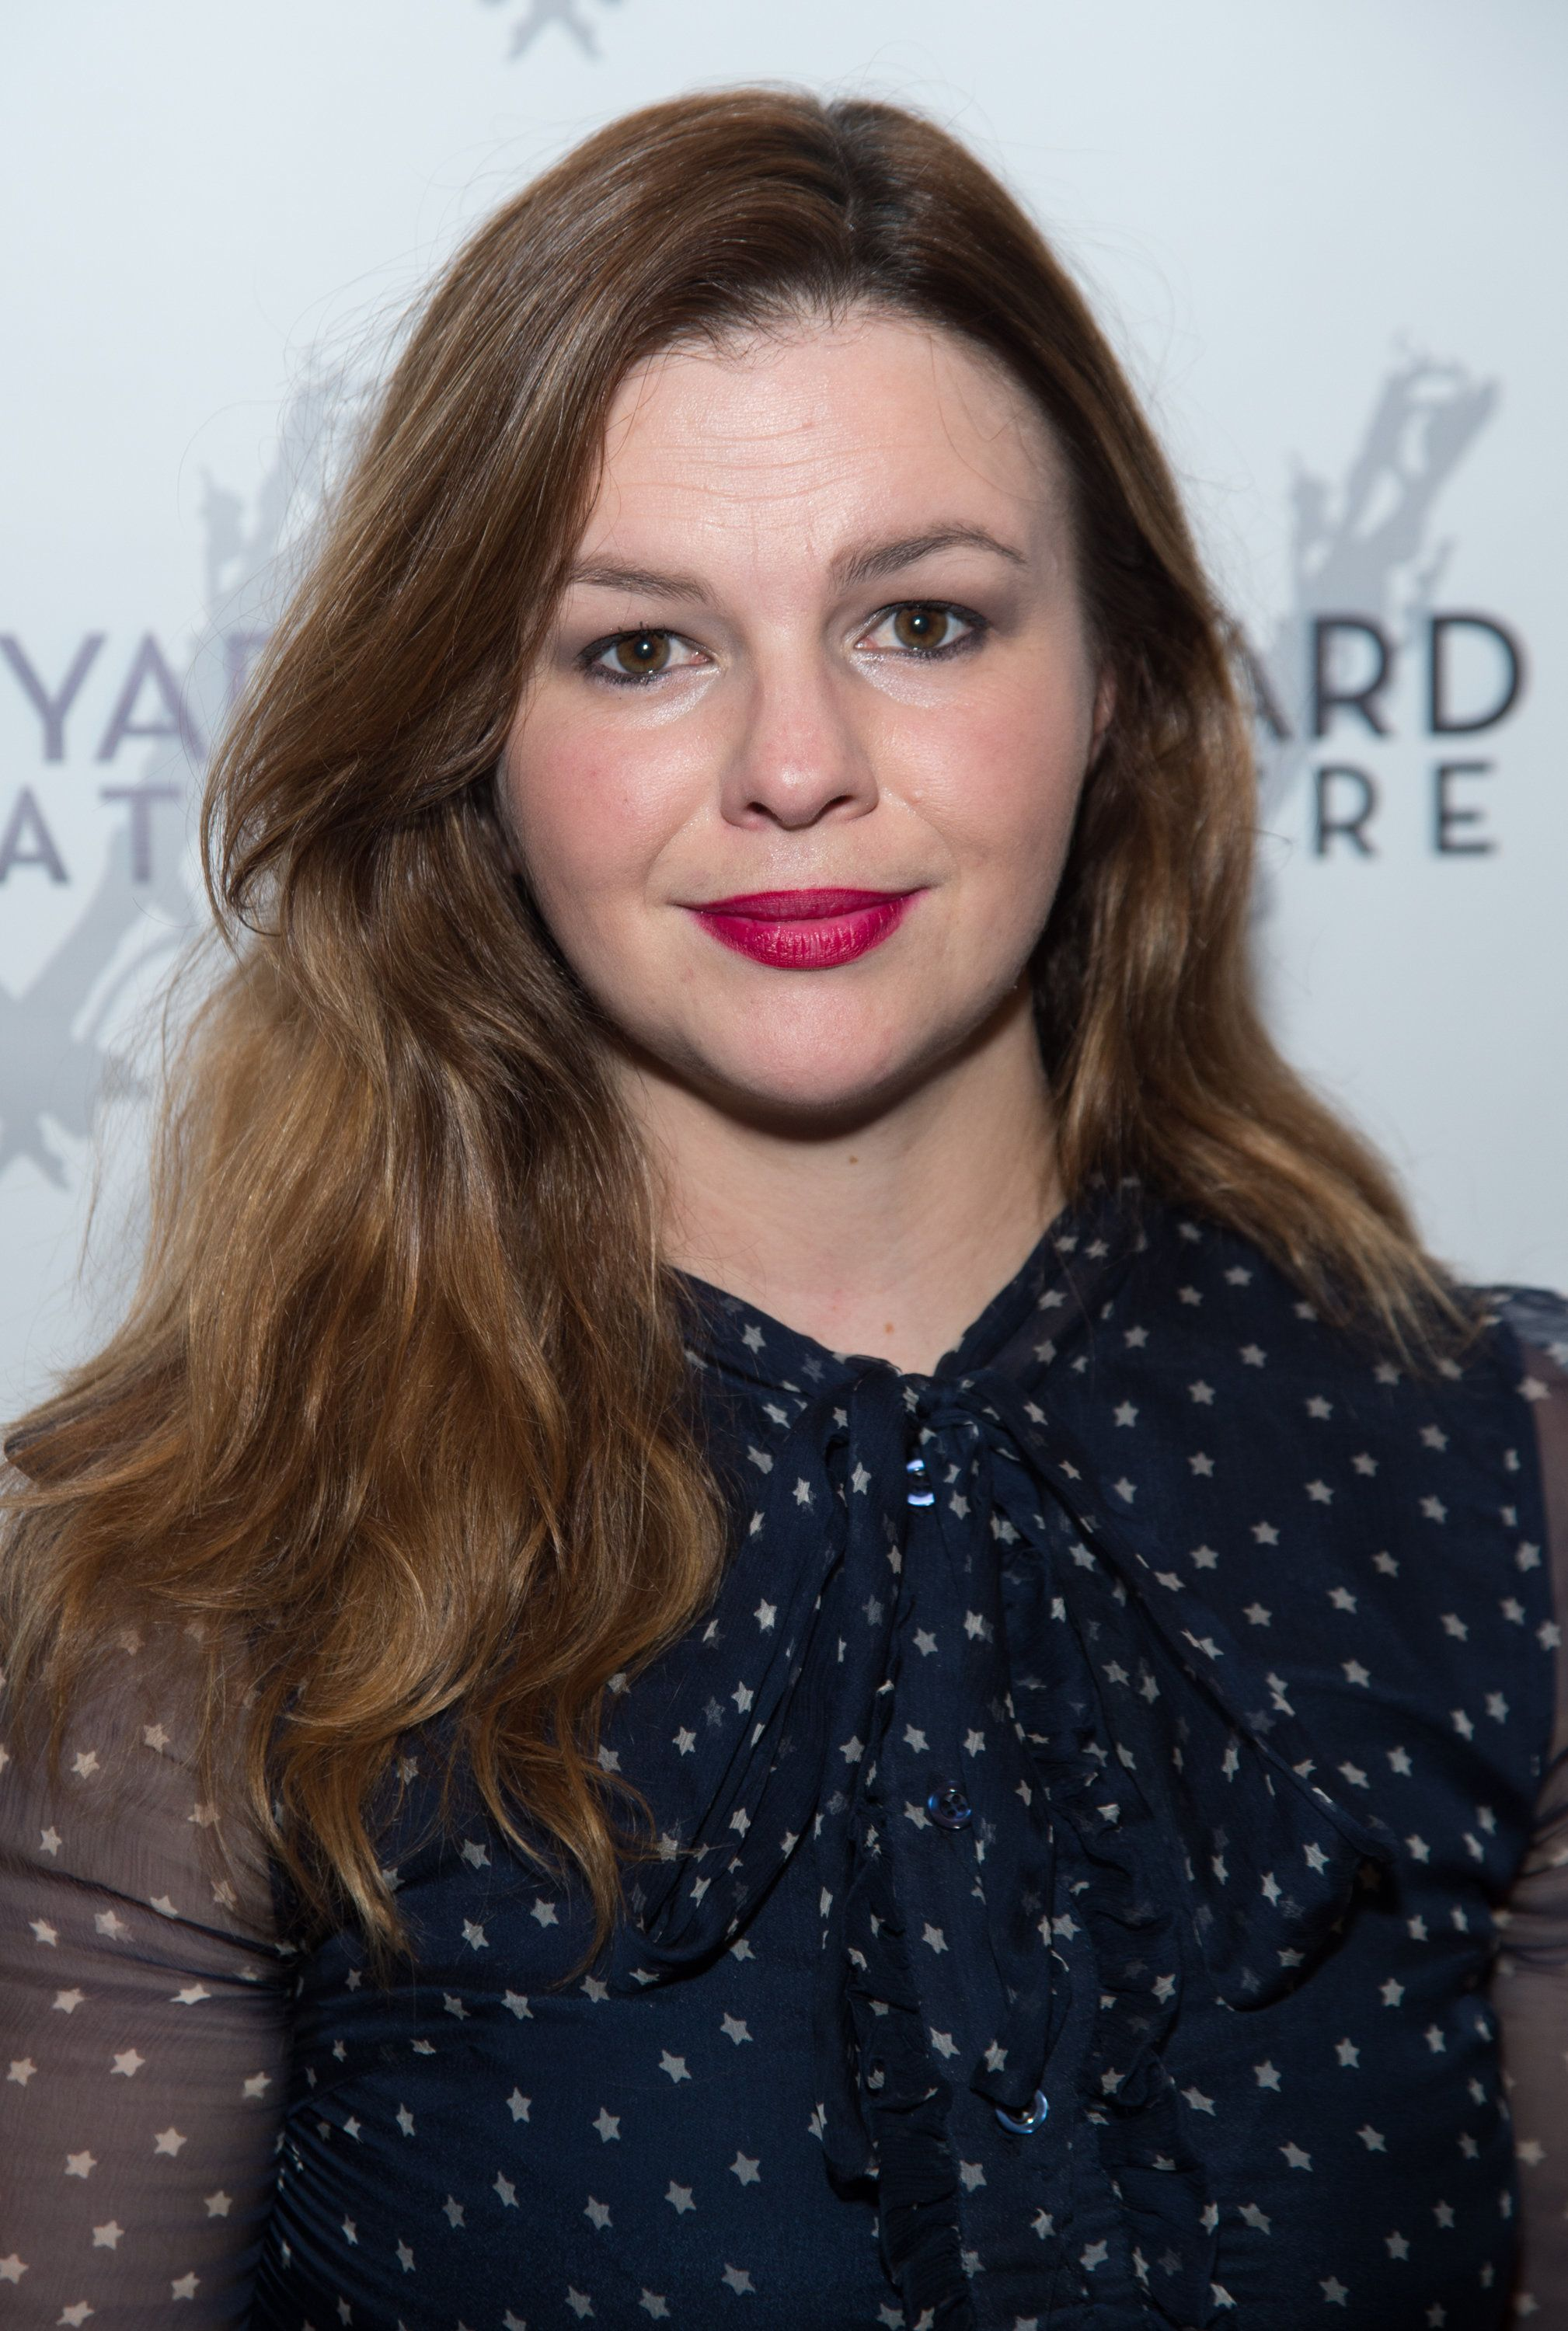 NEW YORK, NY - MAY 21:  Actress Amber Tamblyn attends  'Can You Forgive Her?' Opening Night at the Vineyard Theatre on May 21, 2017 in New York City.  (Photo by Mark Sagliocco/Getty Images)